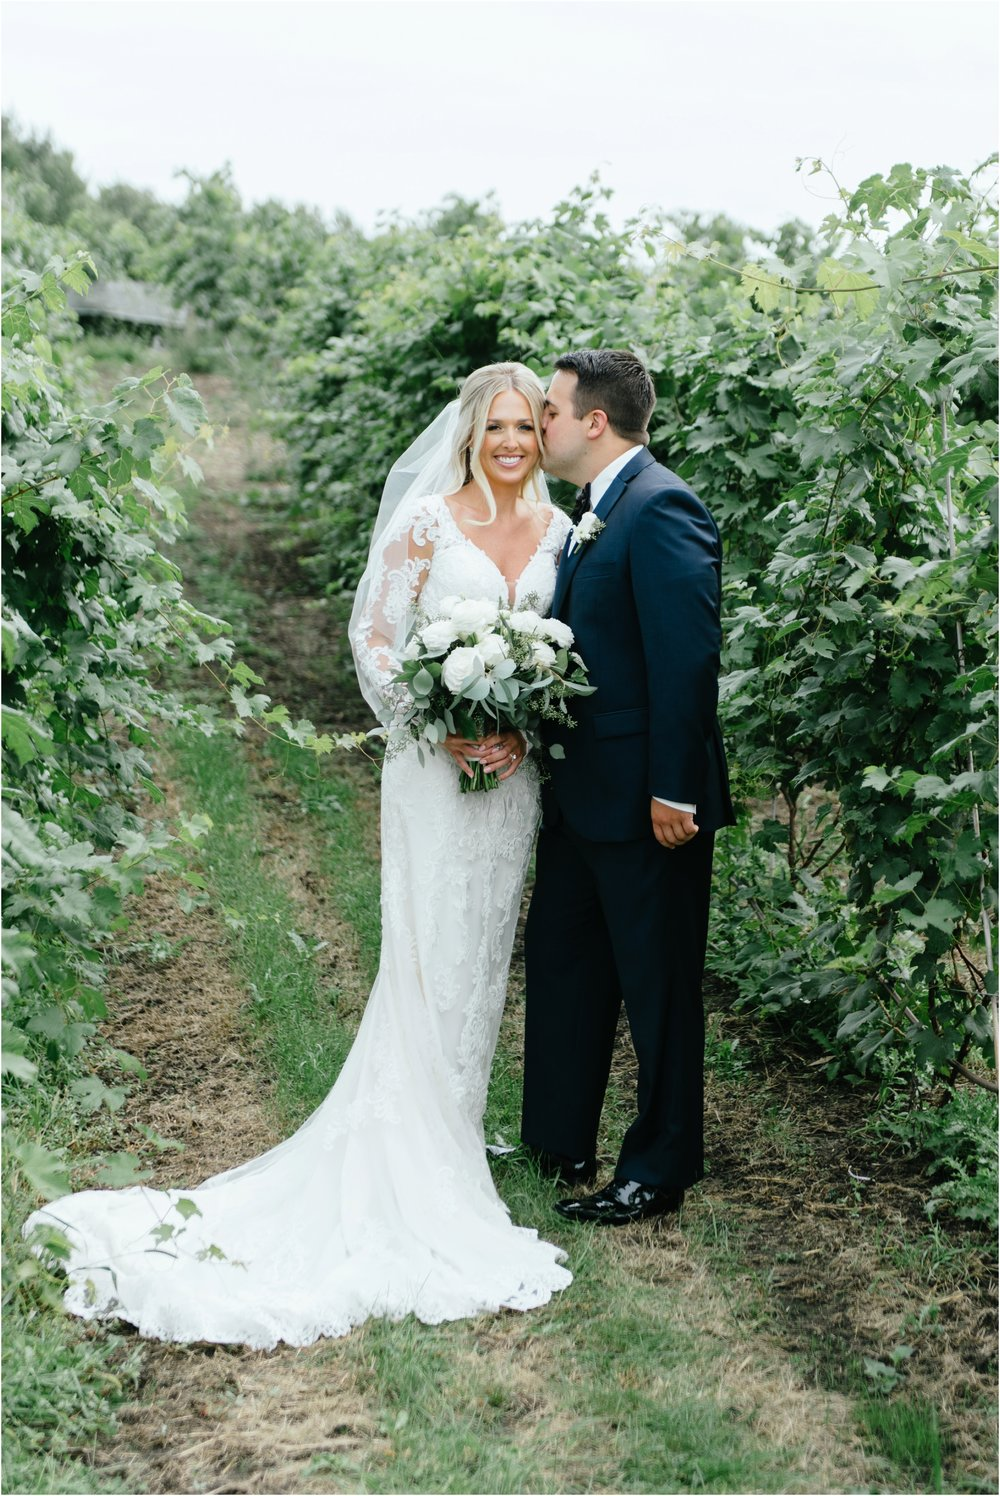 dallasweddingphotographer_fortworthweddingphotographer_texasweddingphotographer_mattandjulieweddings_vinyardwedding_Chelsey+Tom_0013.jpg